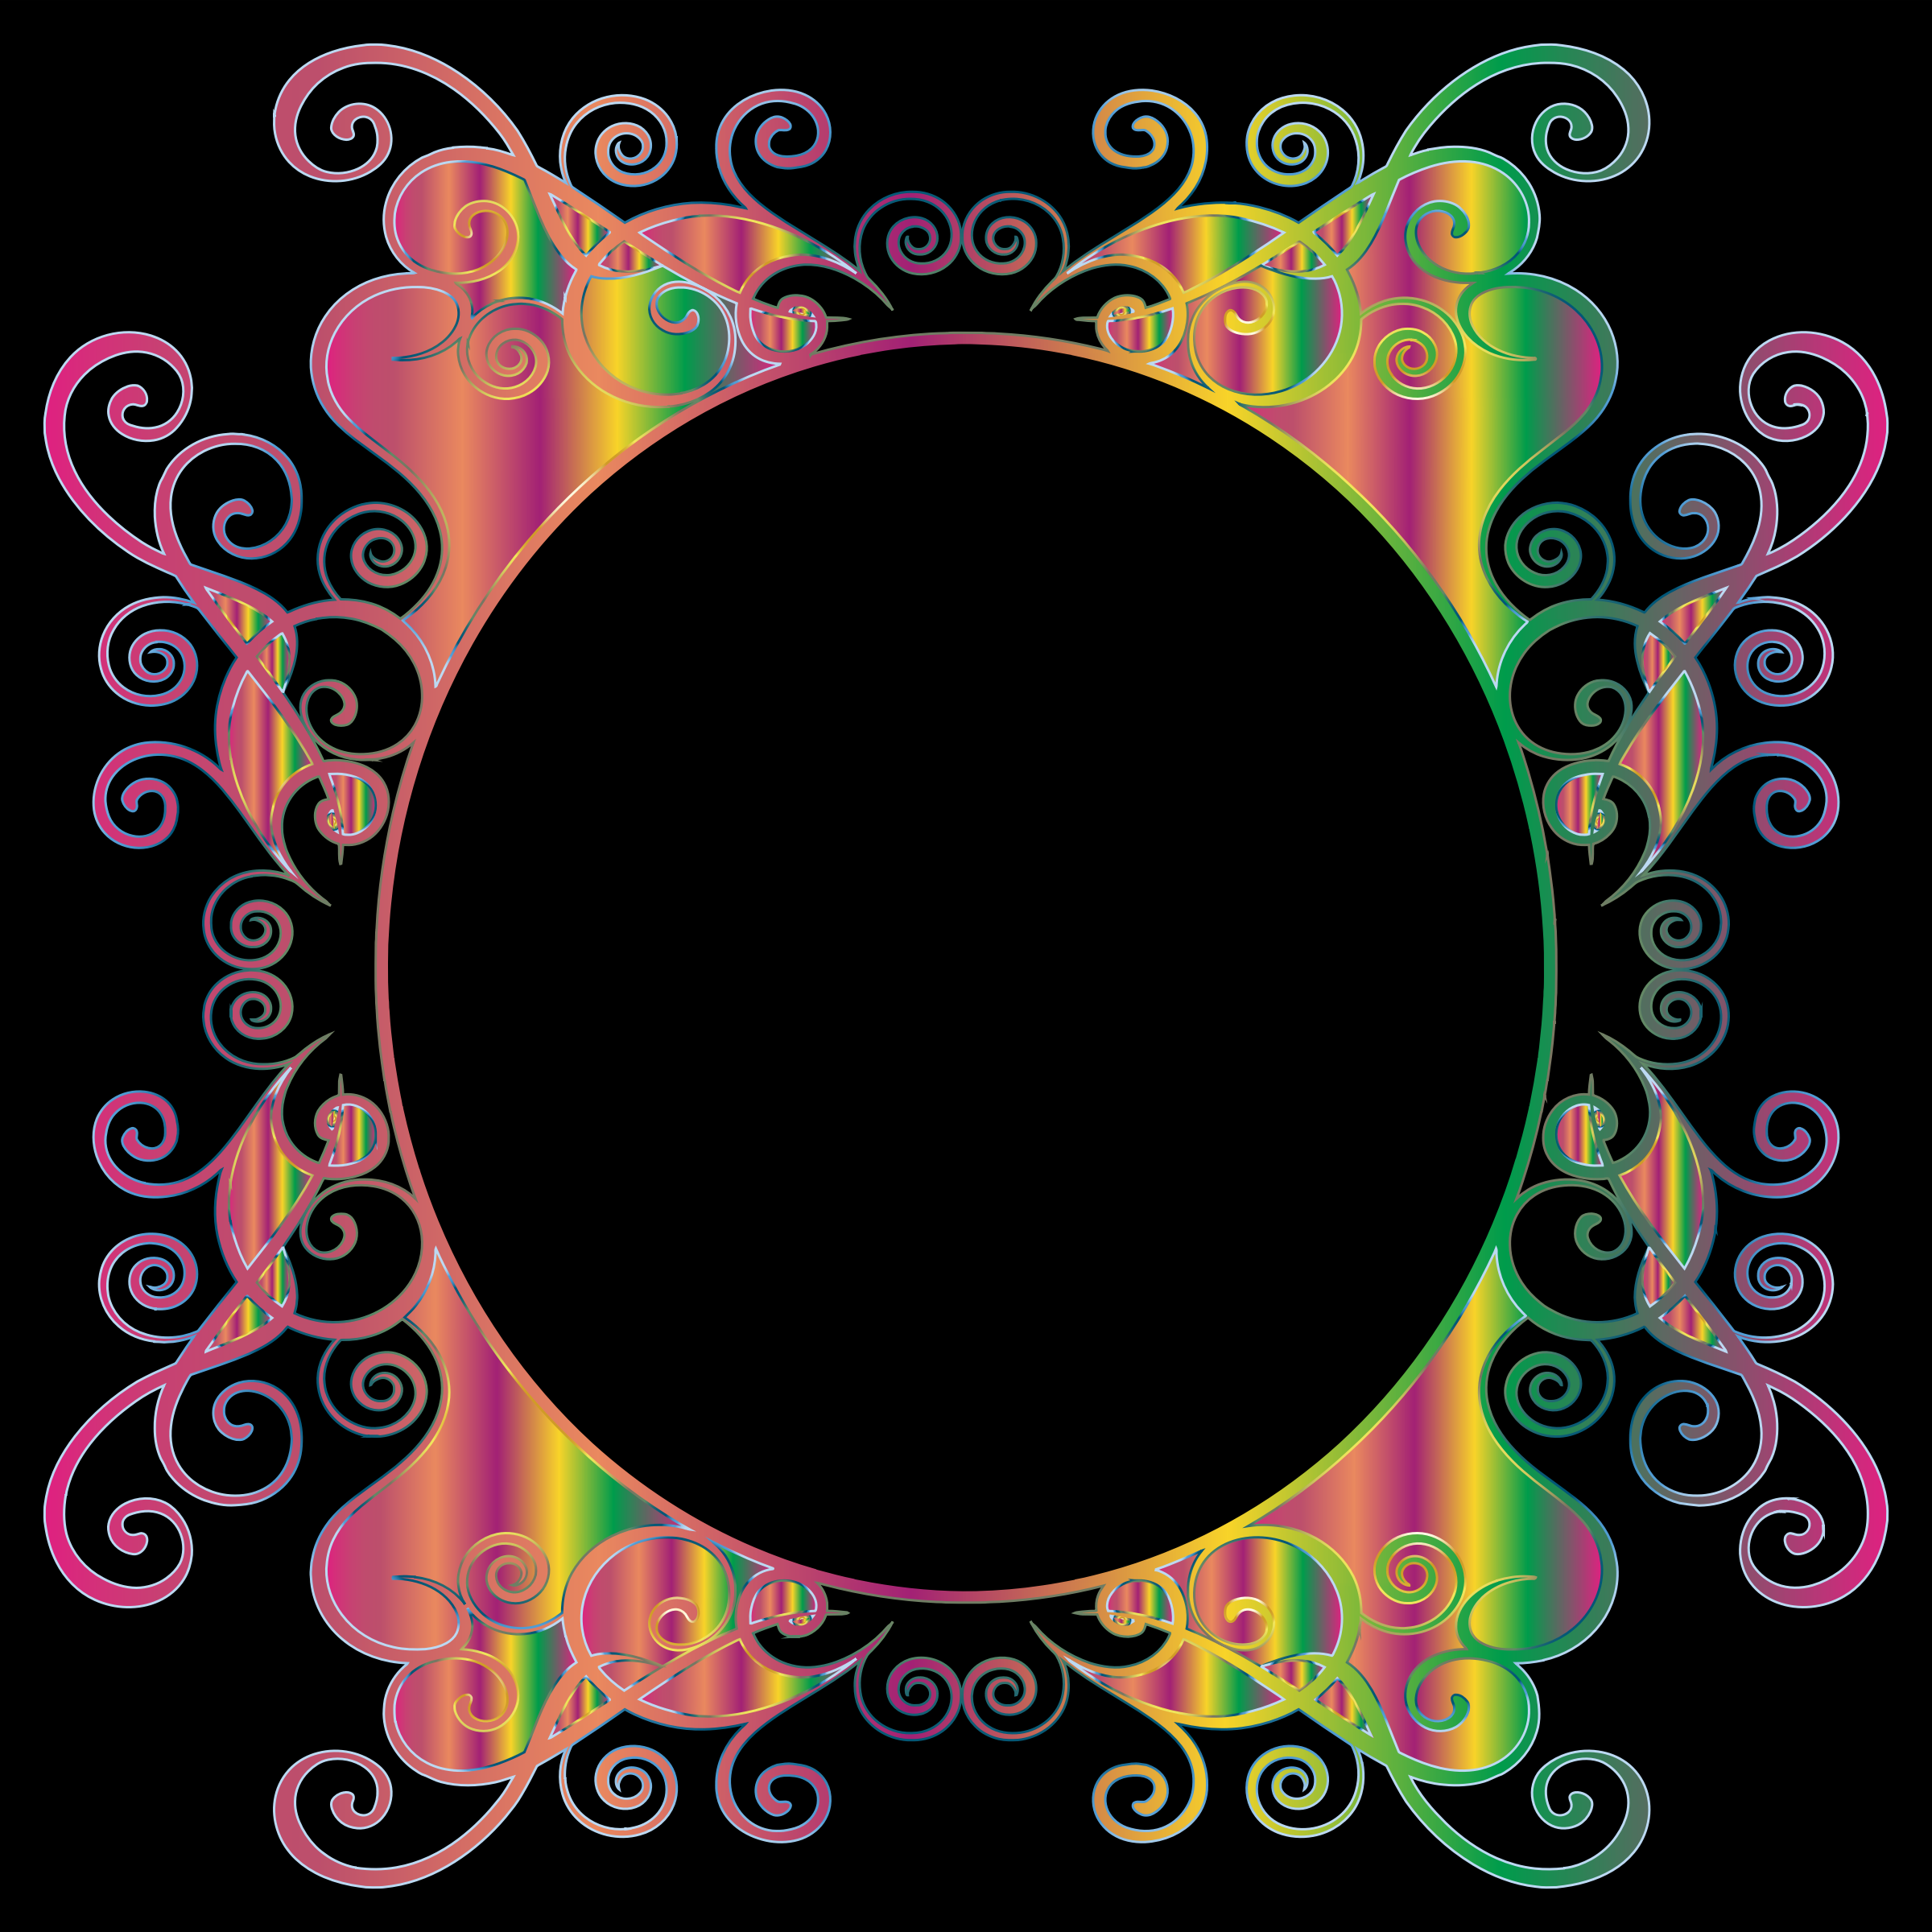 Prismatic Flourish Frame 3 by GDJ